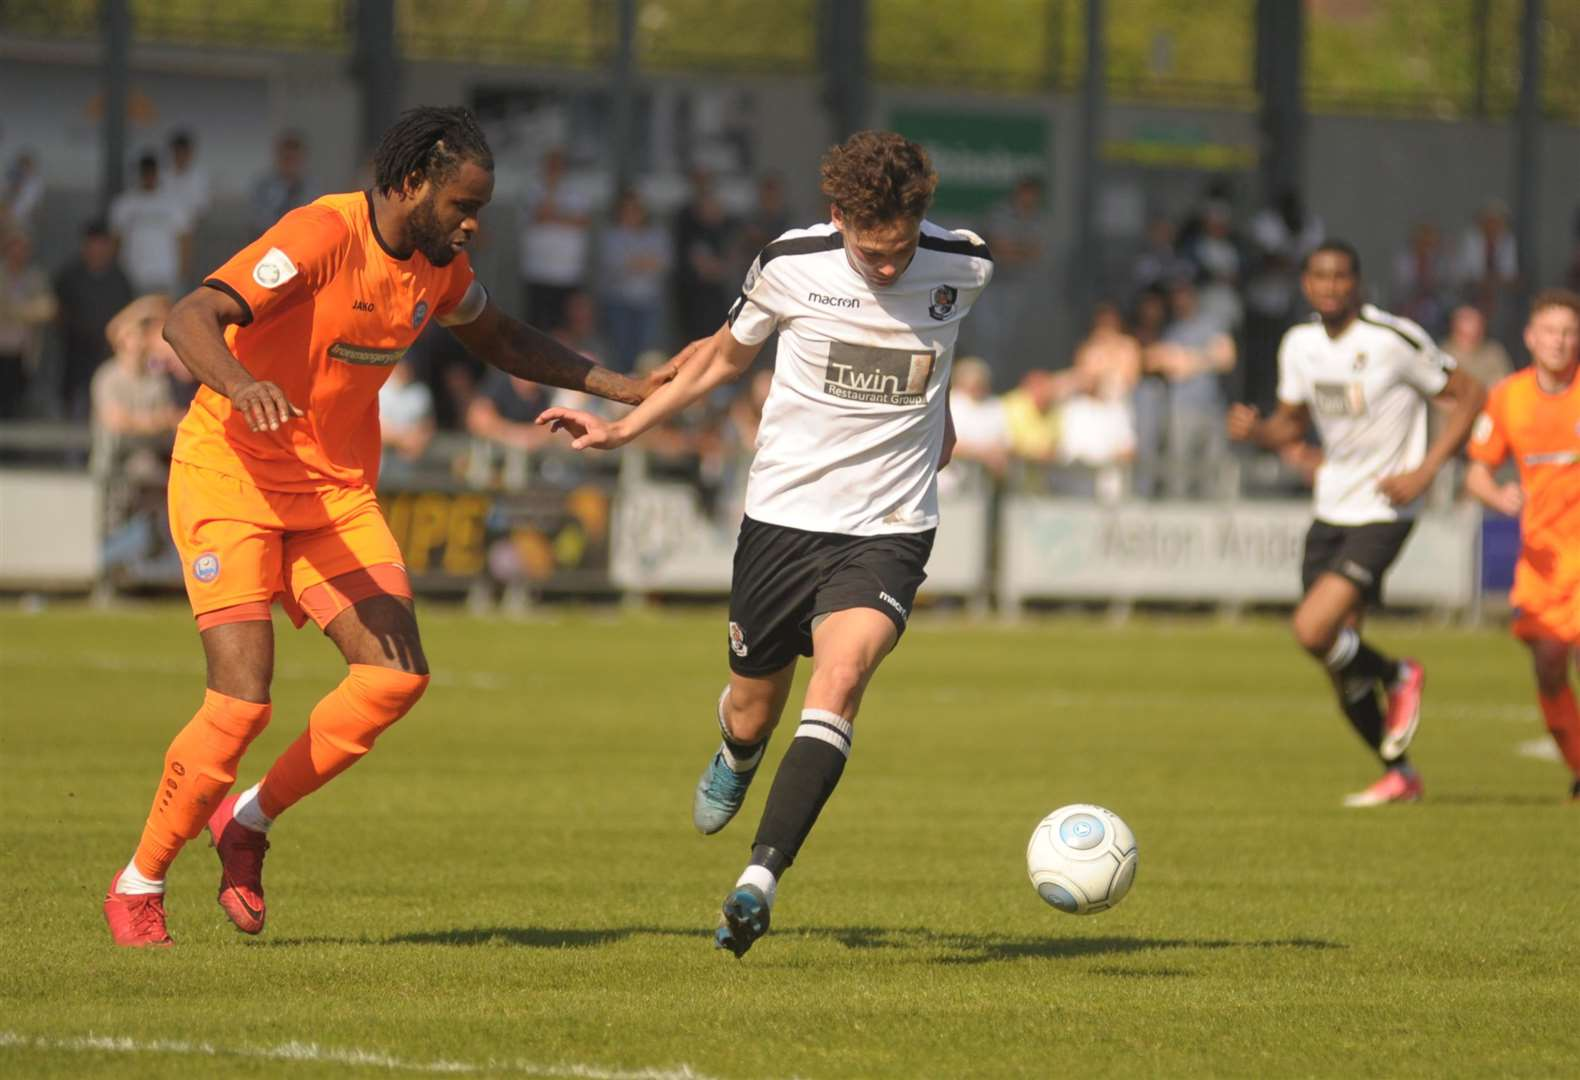 Alfie Pavey up against Braintree captain Marc-Anthony Okoye in the play-off semi-final Picture: Steve Crispe